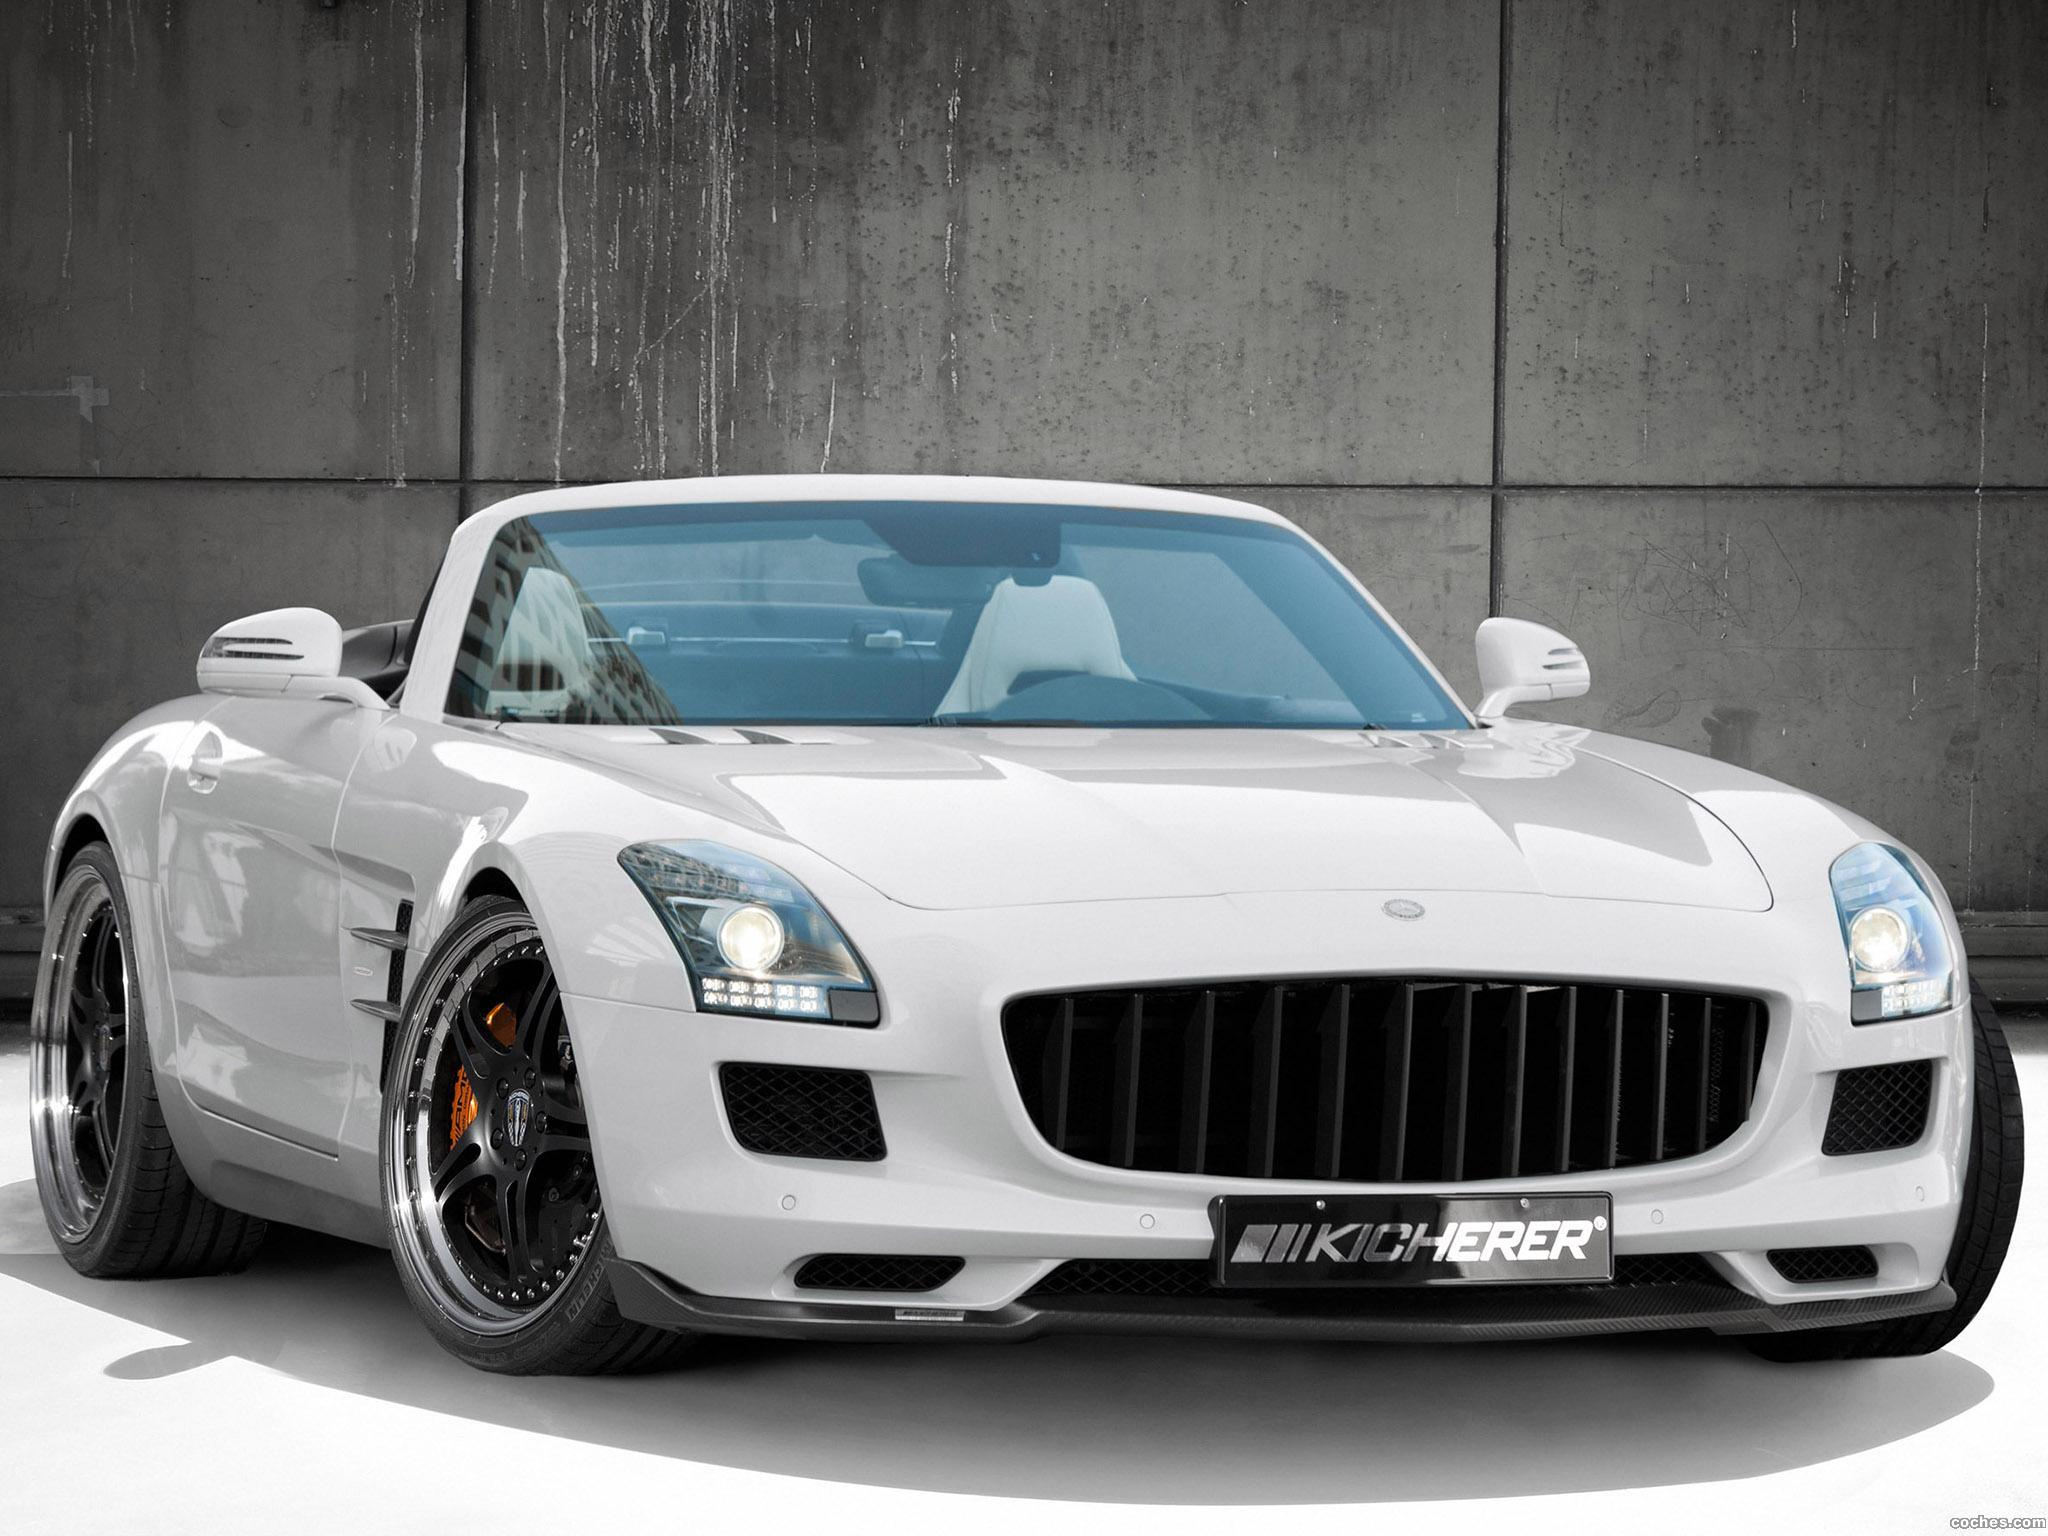 Foto 0 de Kicherer Mercedes AMG Clase SLS Roadster Supersport GTR 2011